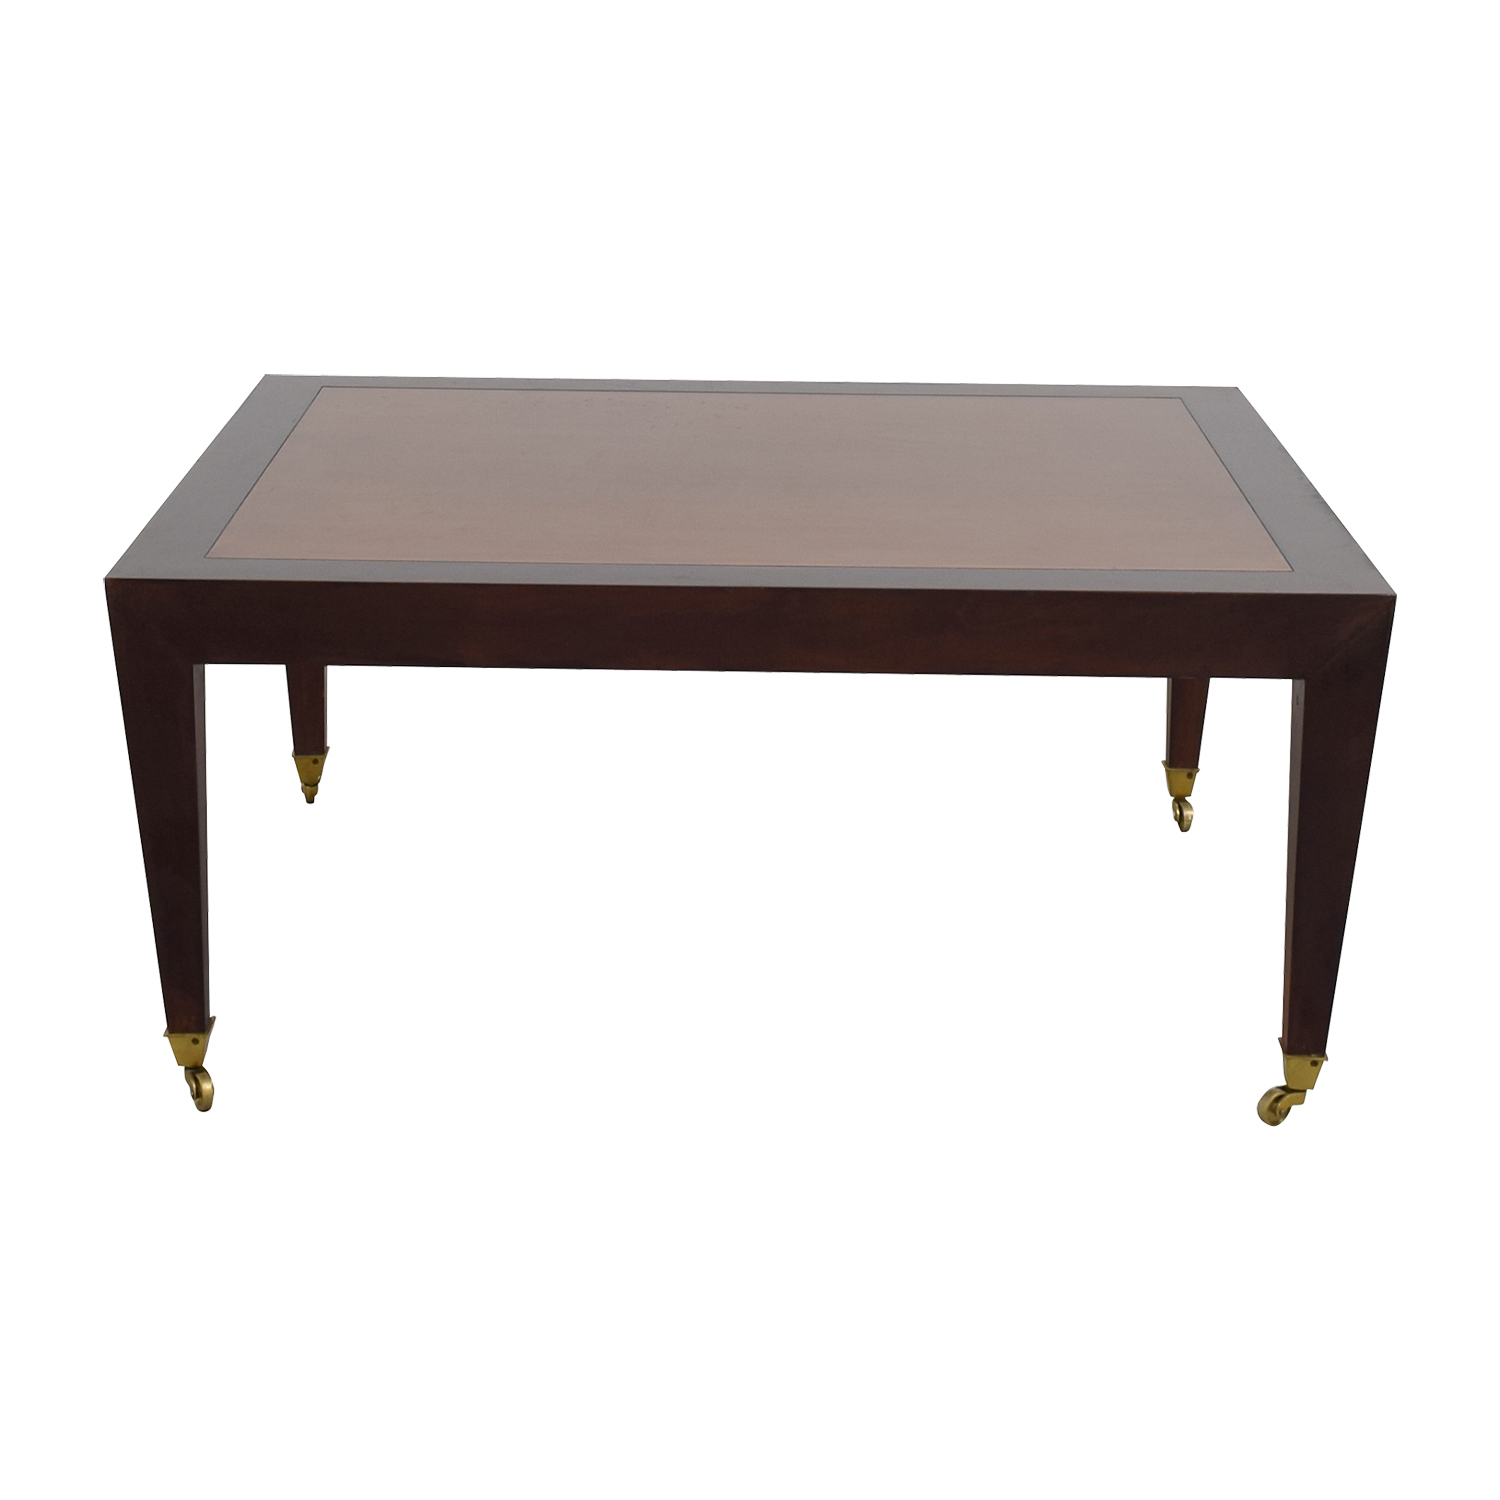 buy Custom Made Coffee Table on Castors Tables